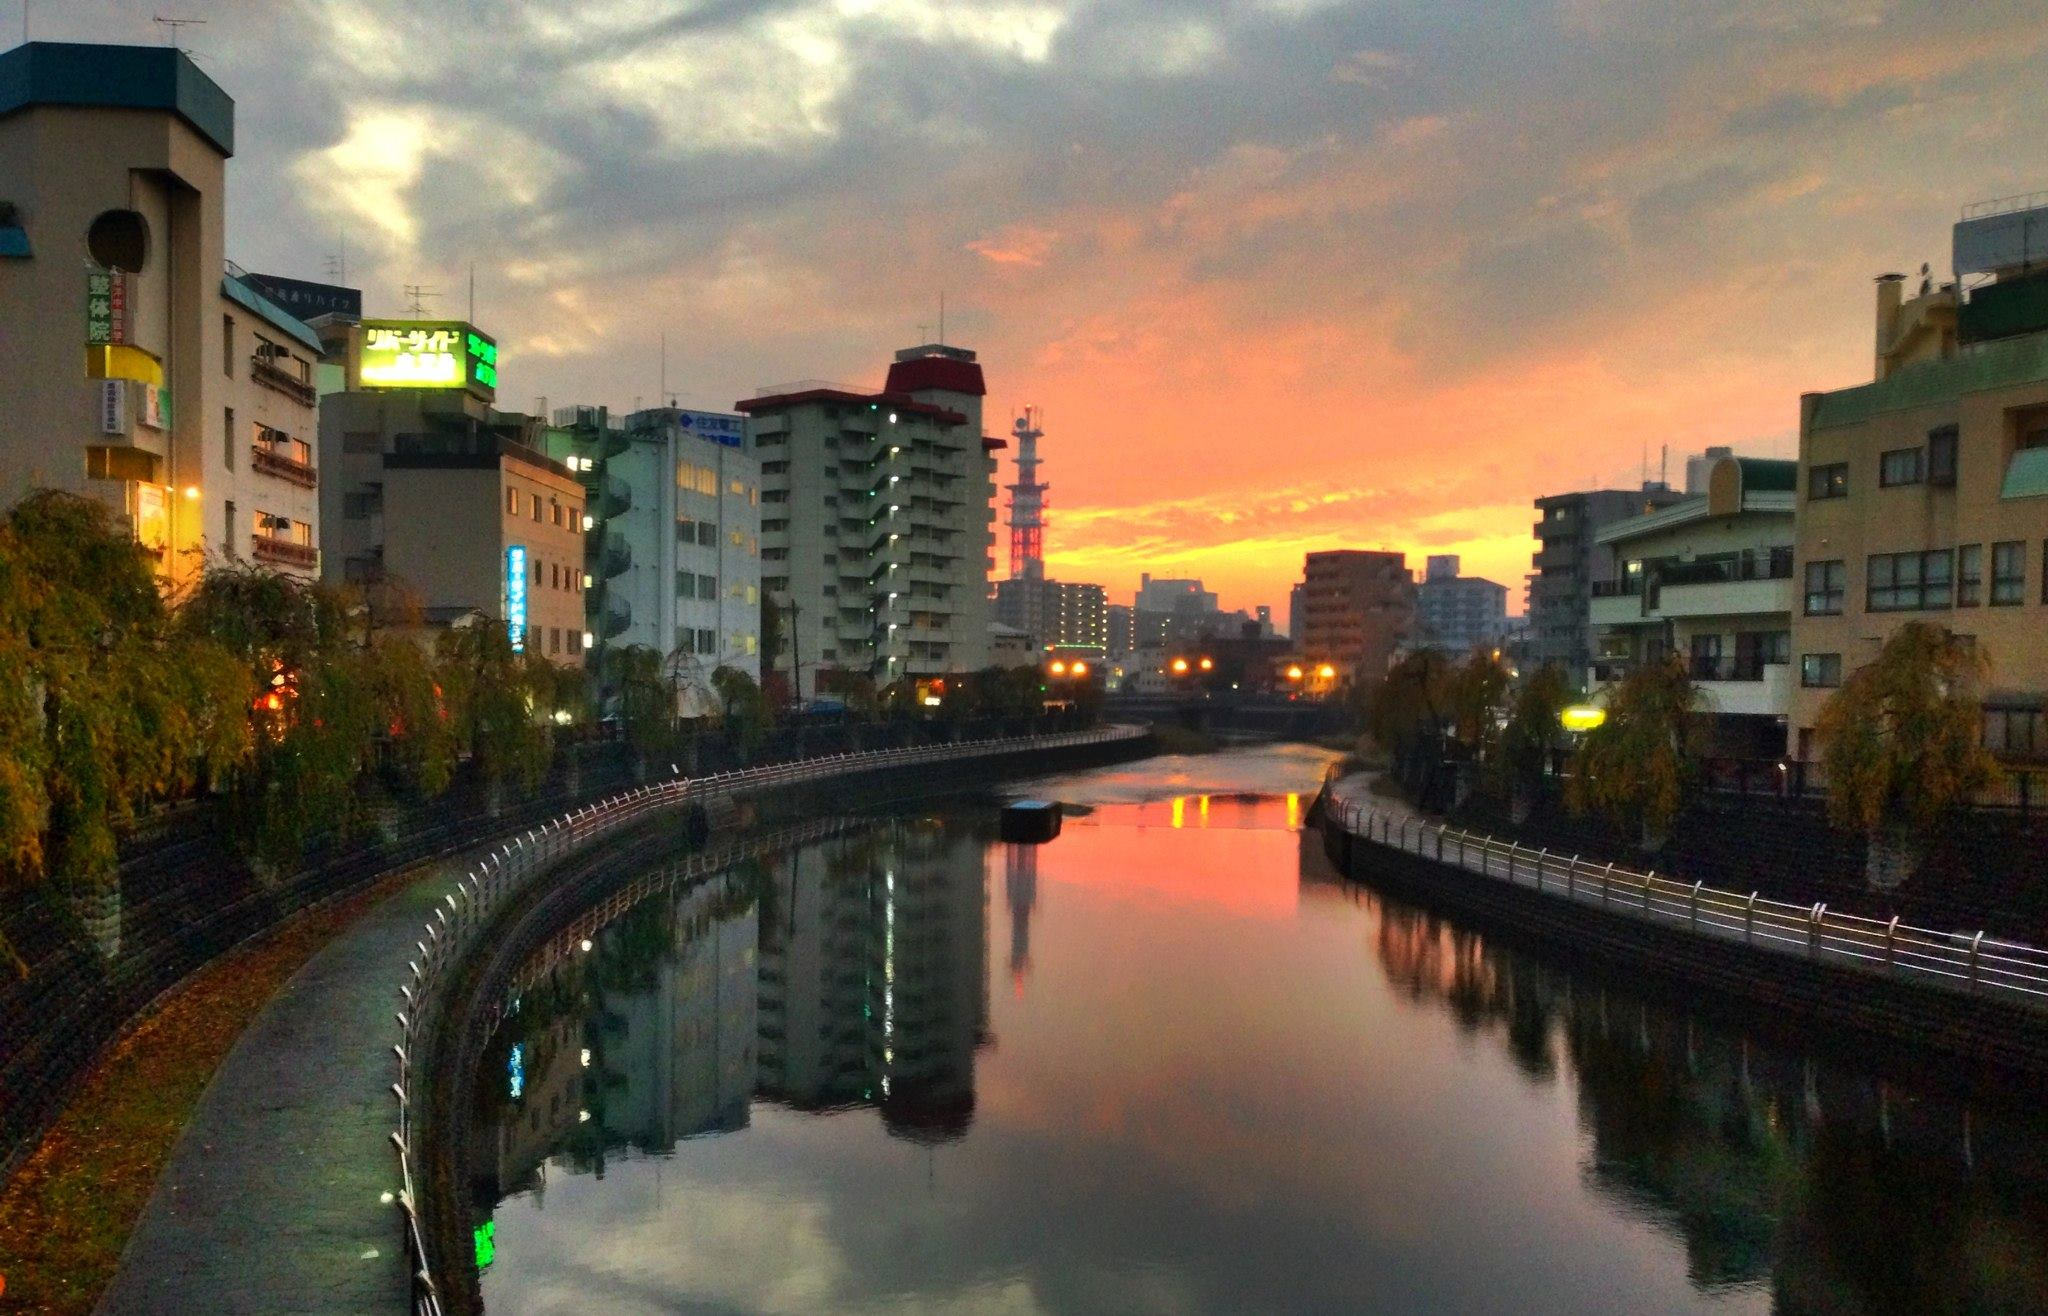 Utsunomiya, Tochigi, Japan